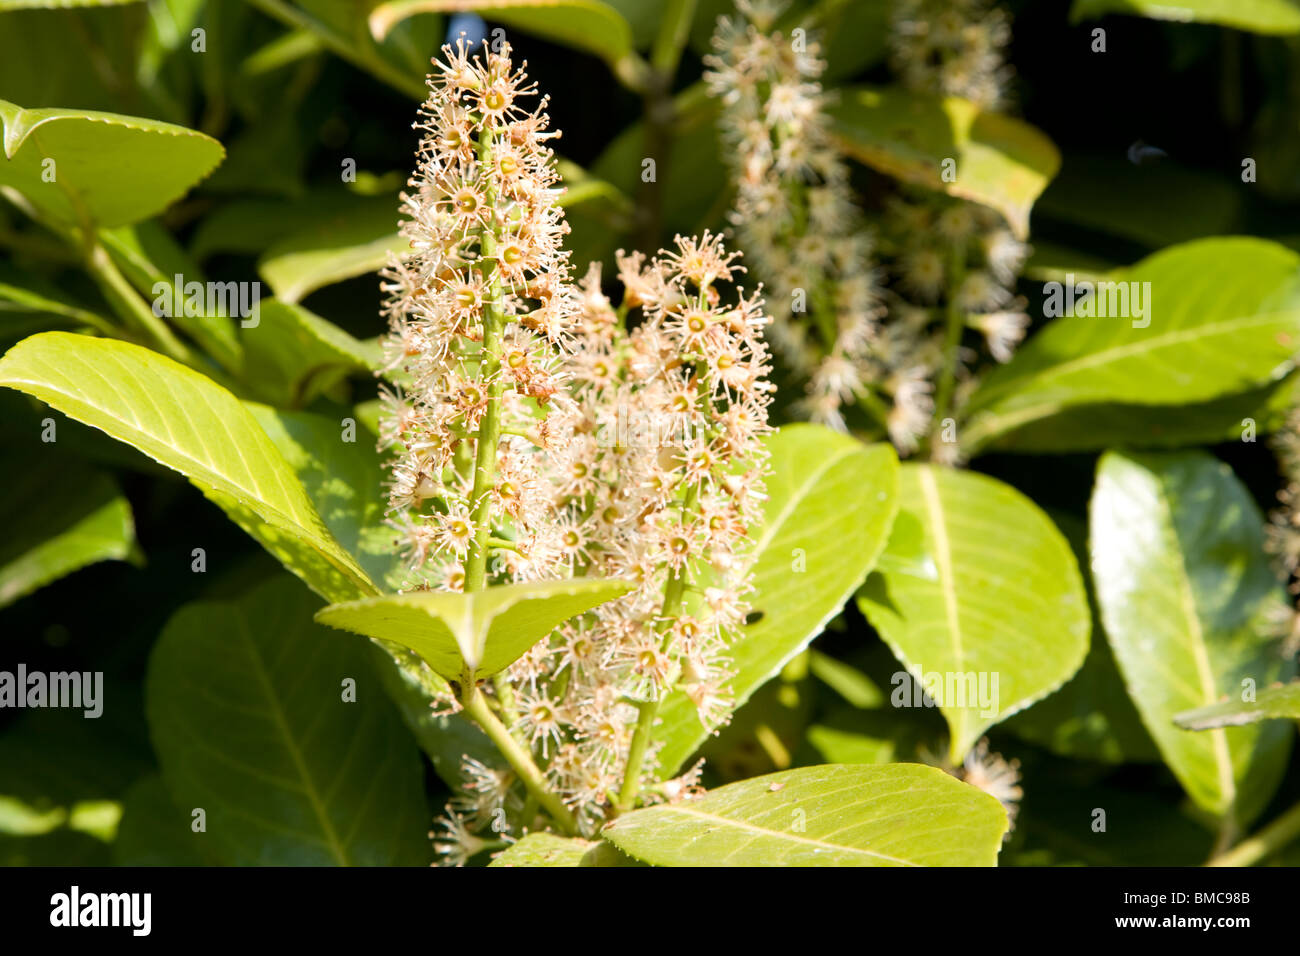 Laurel bush leaves and flowers Stock Photo